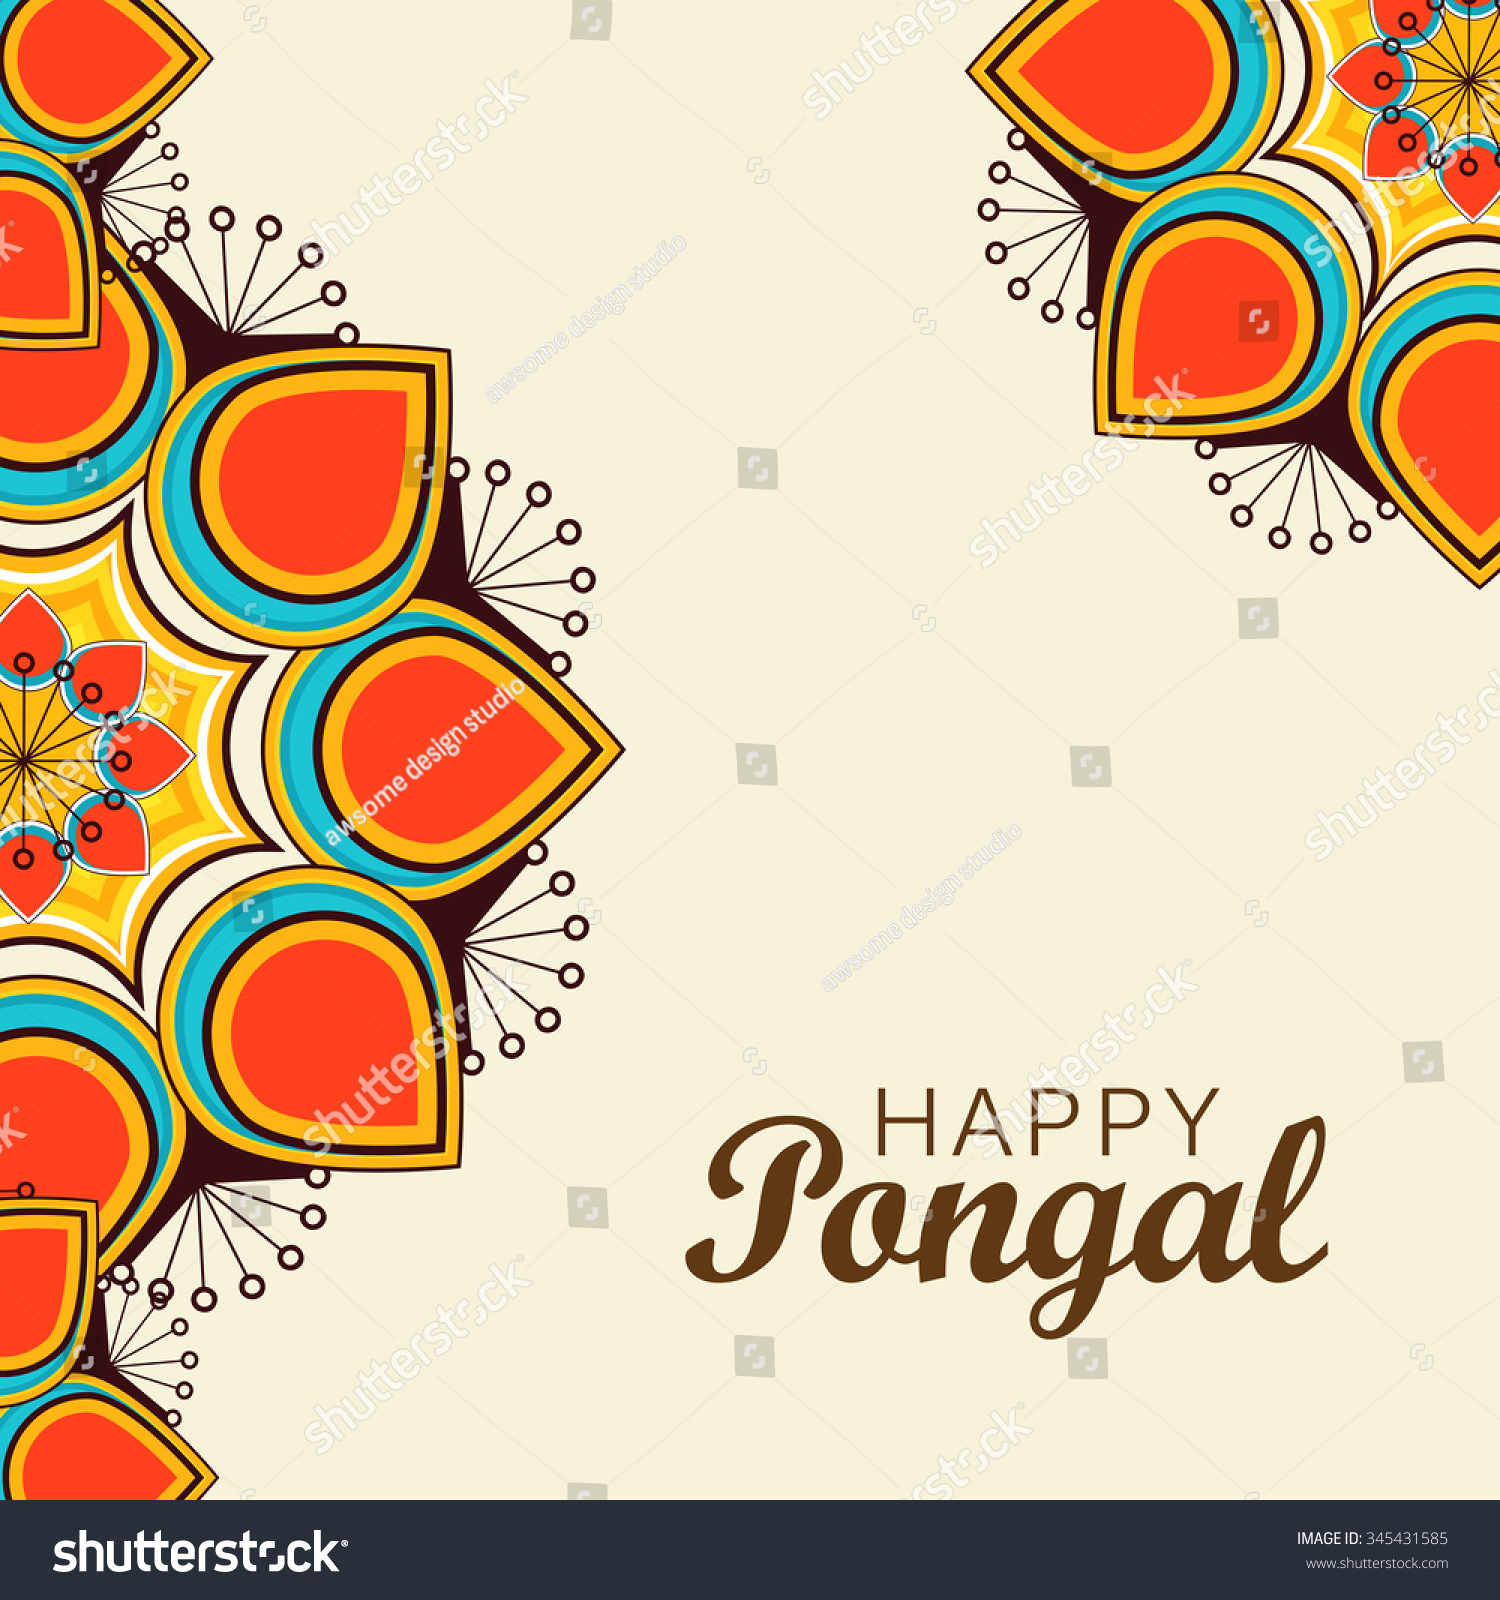 Vector Illustration Happy Pongal Greeting Card Stock Vector Royalty